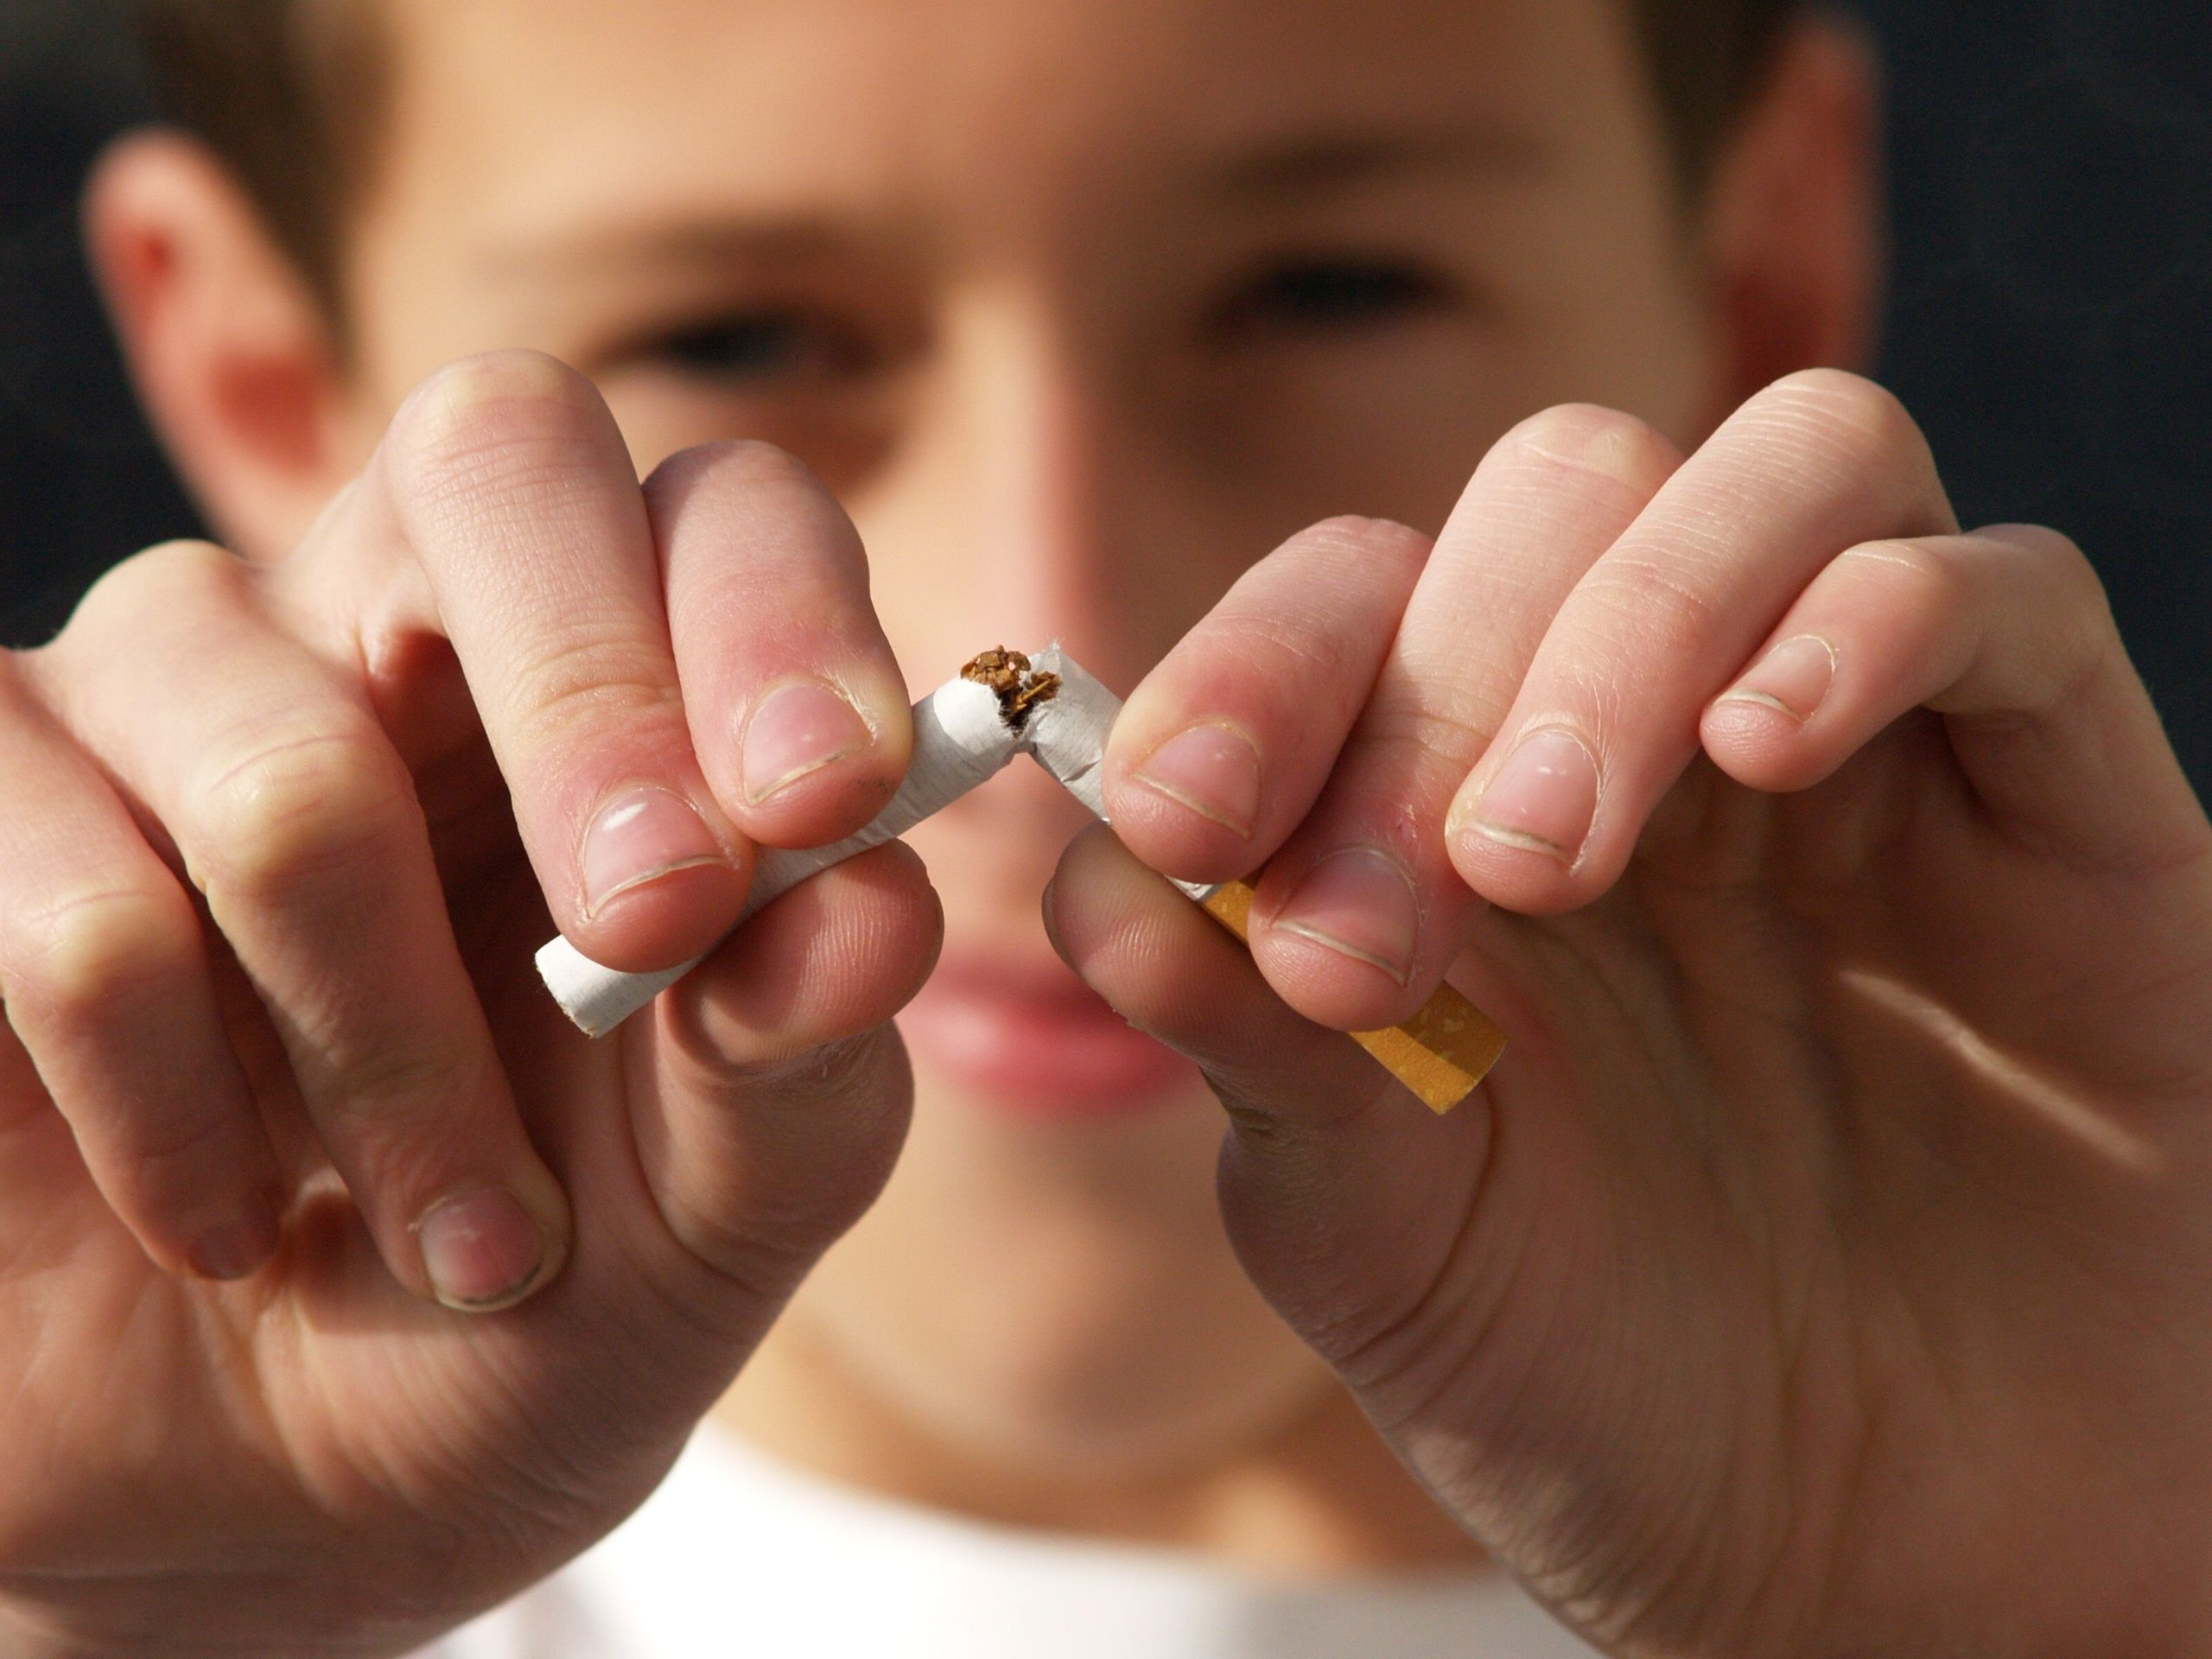 West Allis WI Dentist | Tobacco & Your Teeth: The Risks of Chewing and Smoking